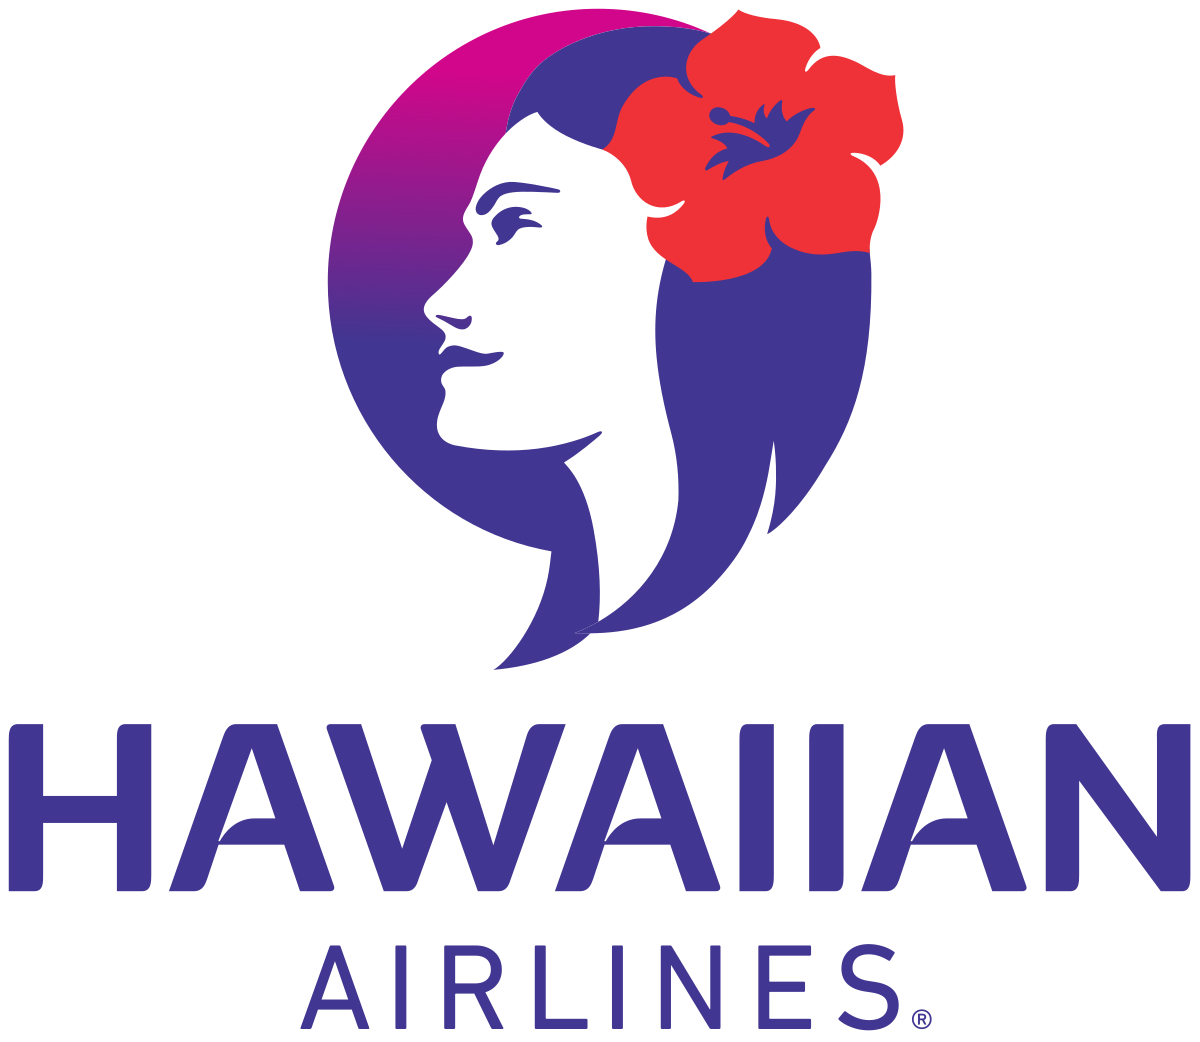 Hawaiian_Airlines_logo_2017